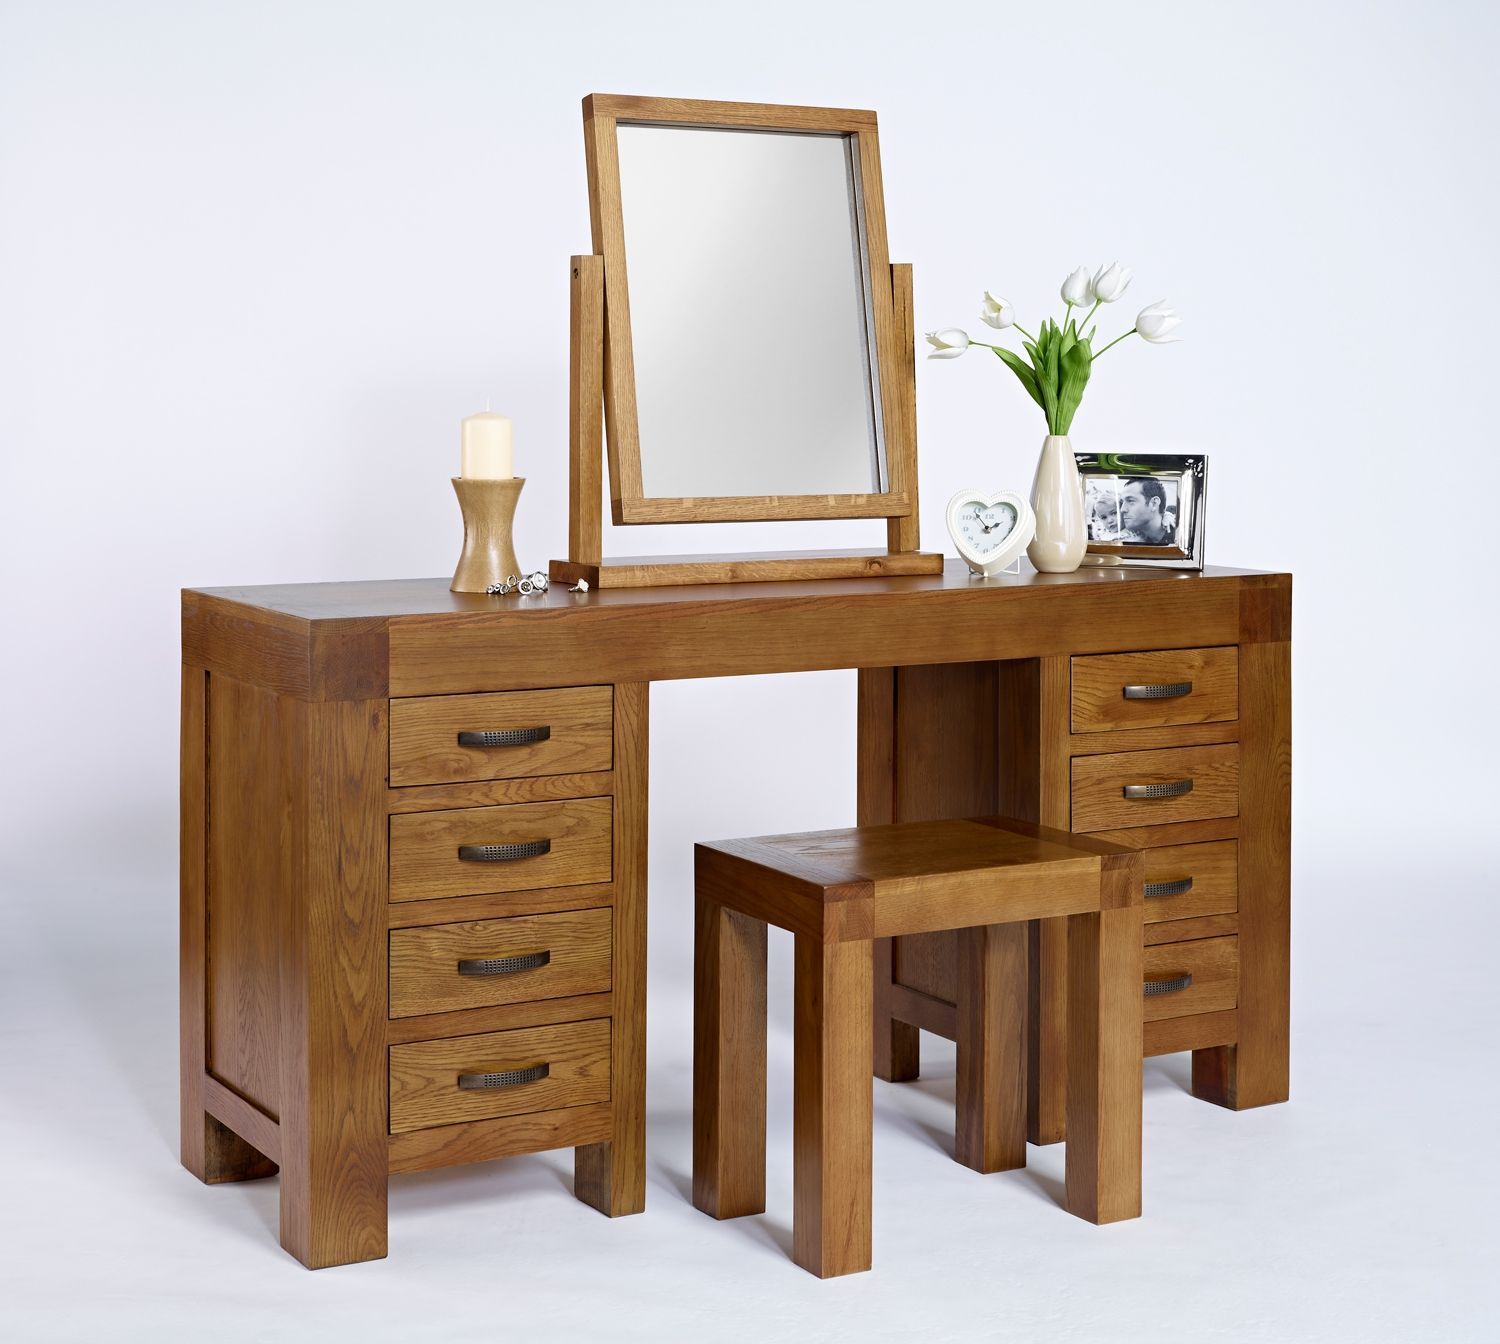 Santana Reclaimed Oak Dressing Table with 8 Drawers | Dressing ...